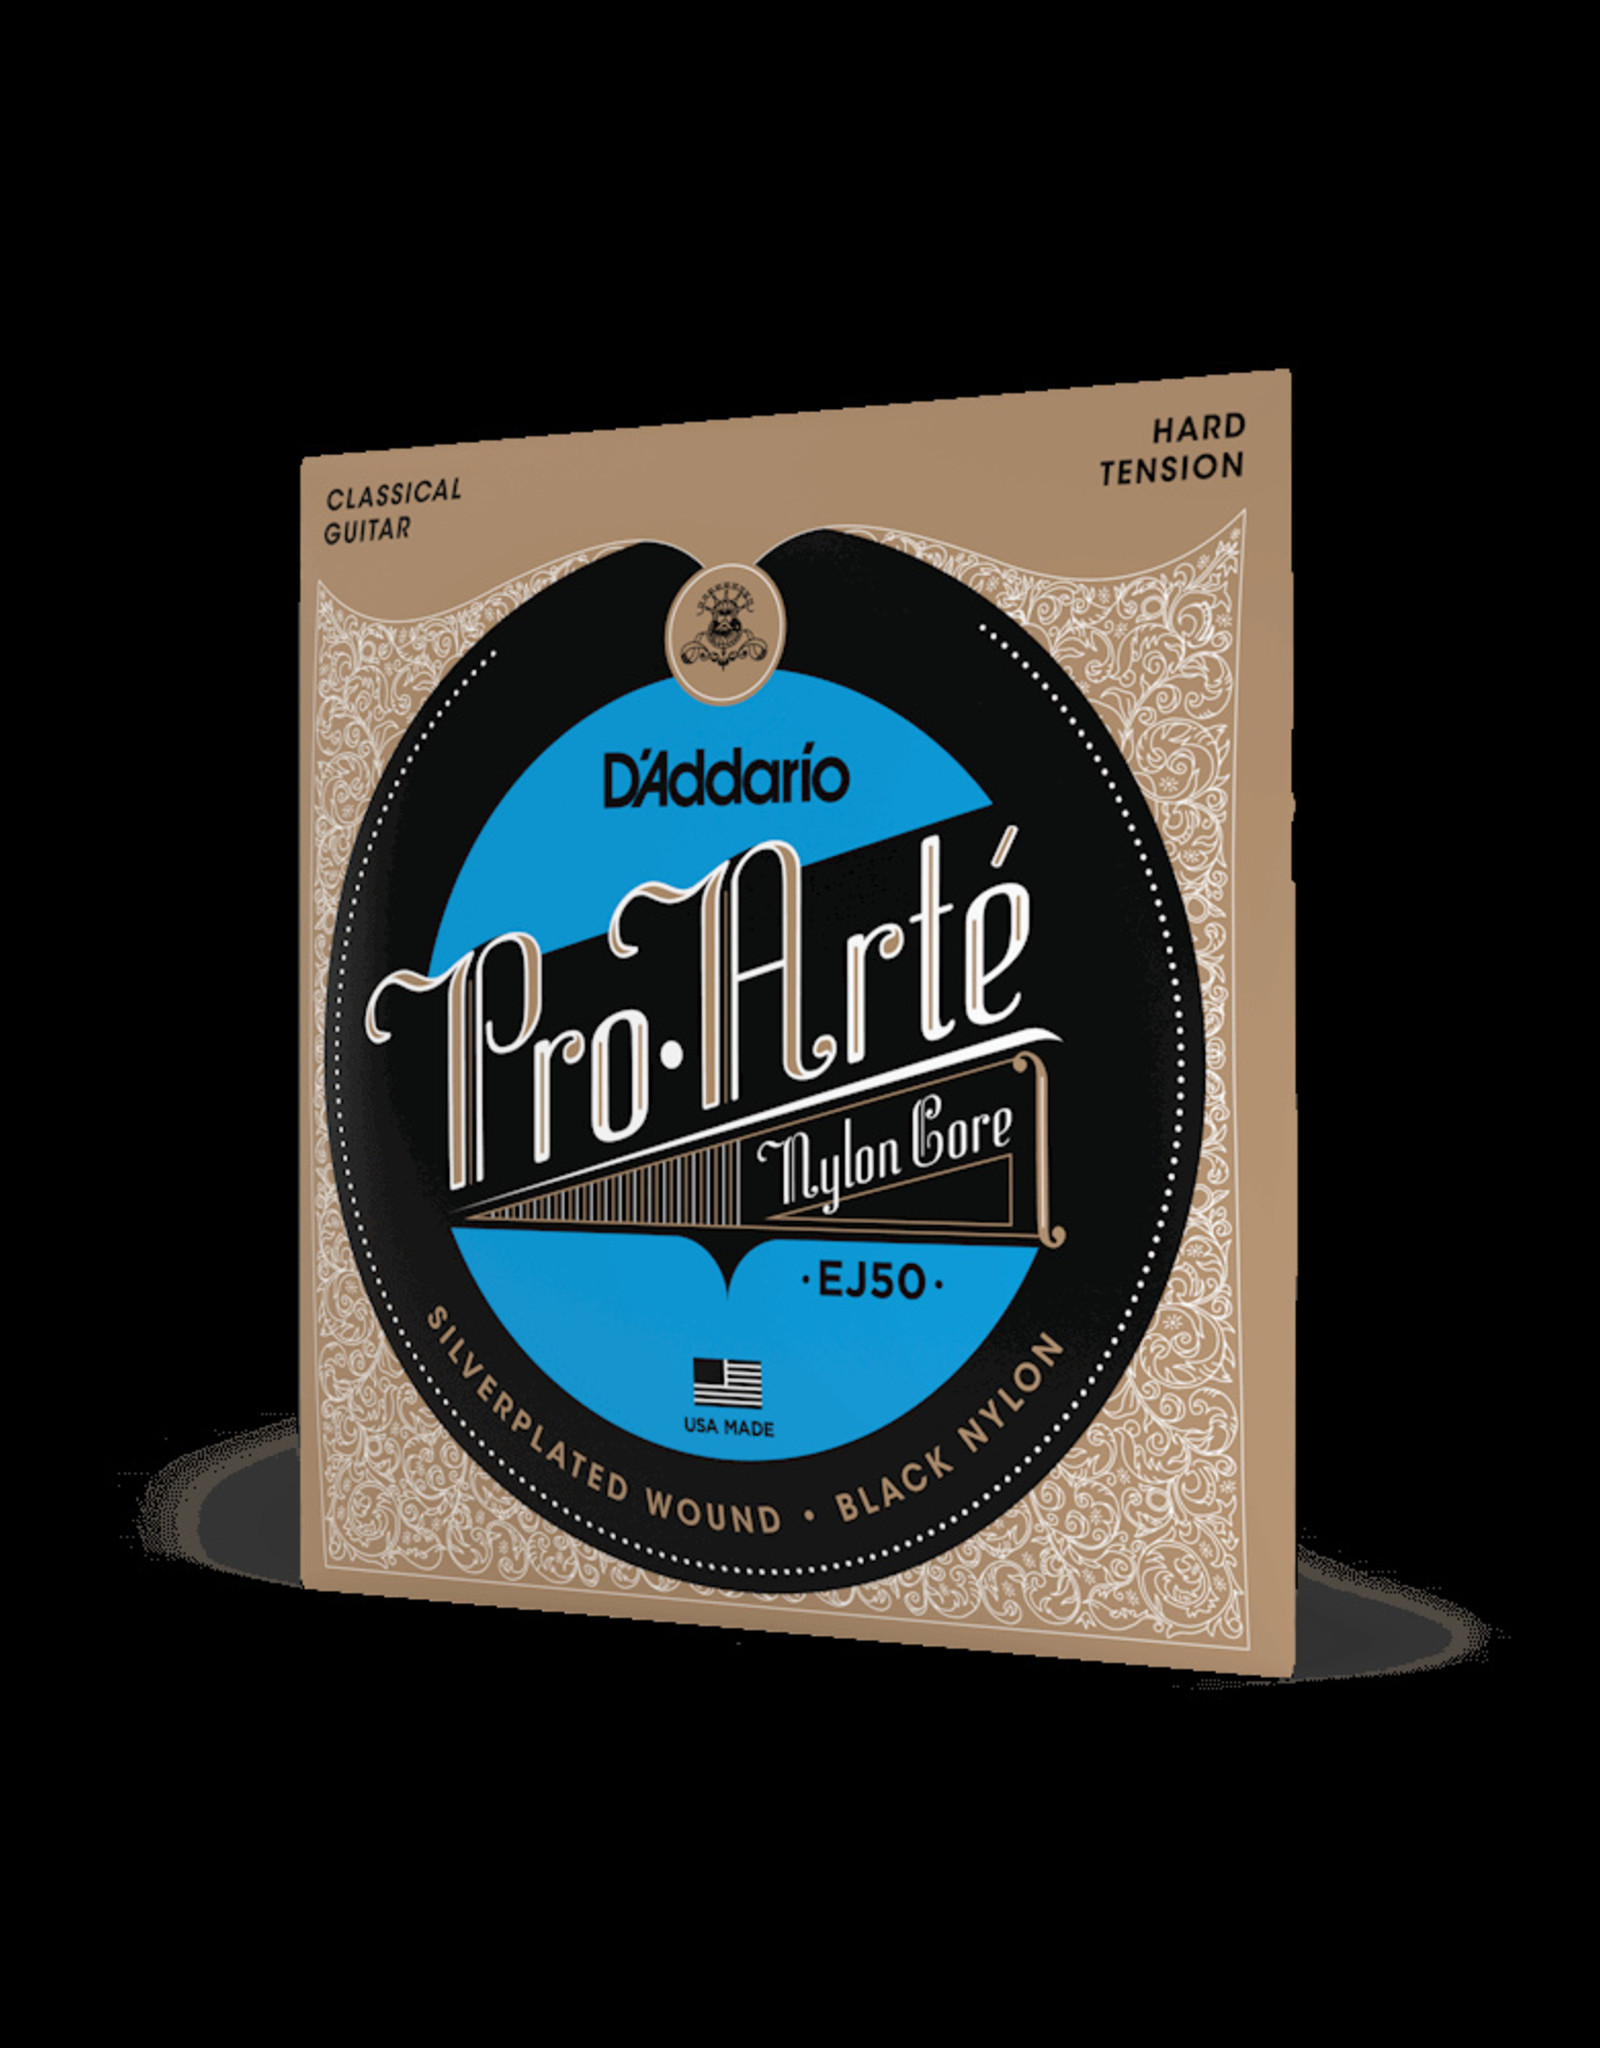 D'Addario D'Addario Classical Hard Tension, Silverplated Wound, Black Treble EJ50 Strings